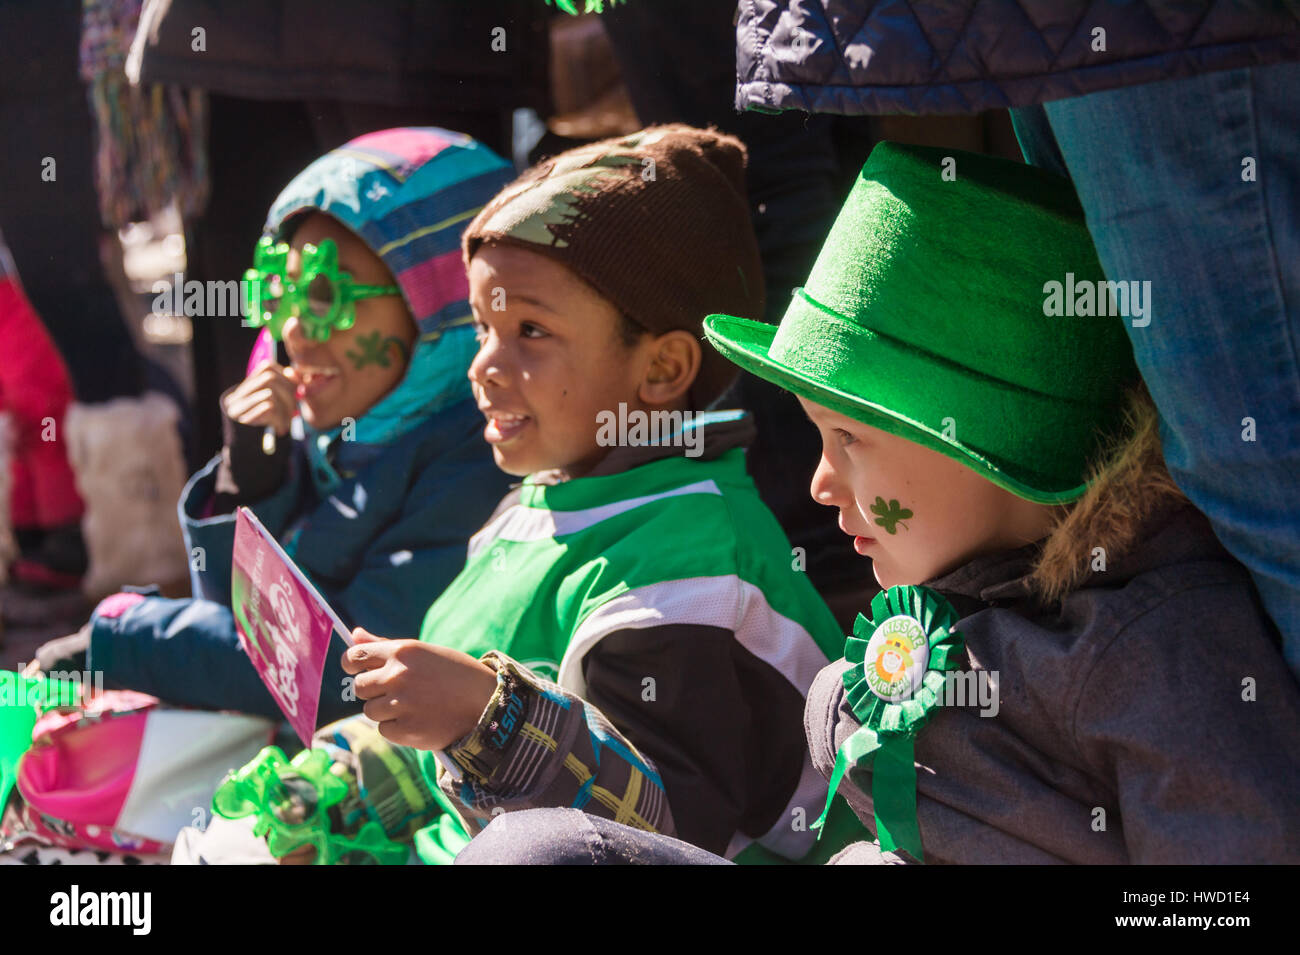 Montreal, Canada - 19 March 2017: 3 kids looking at Montreal's St. Patrick's Day parade - Stock Image